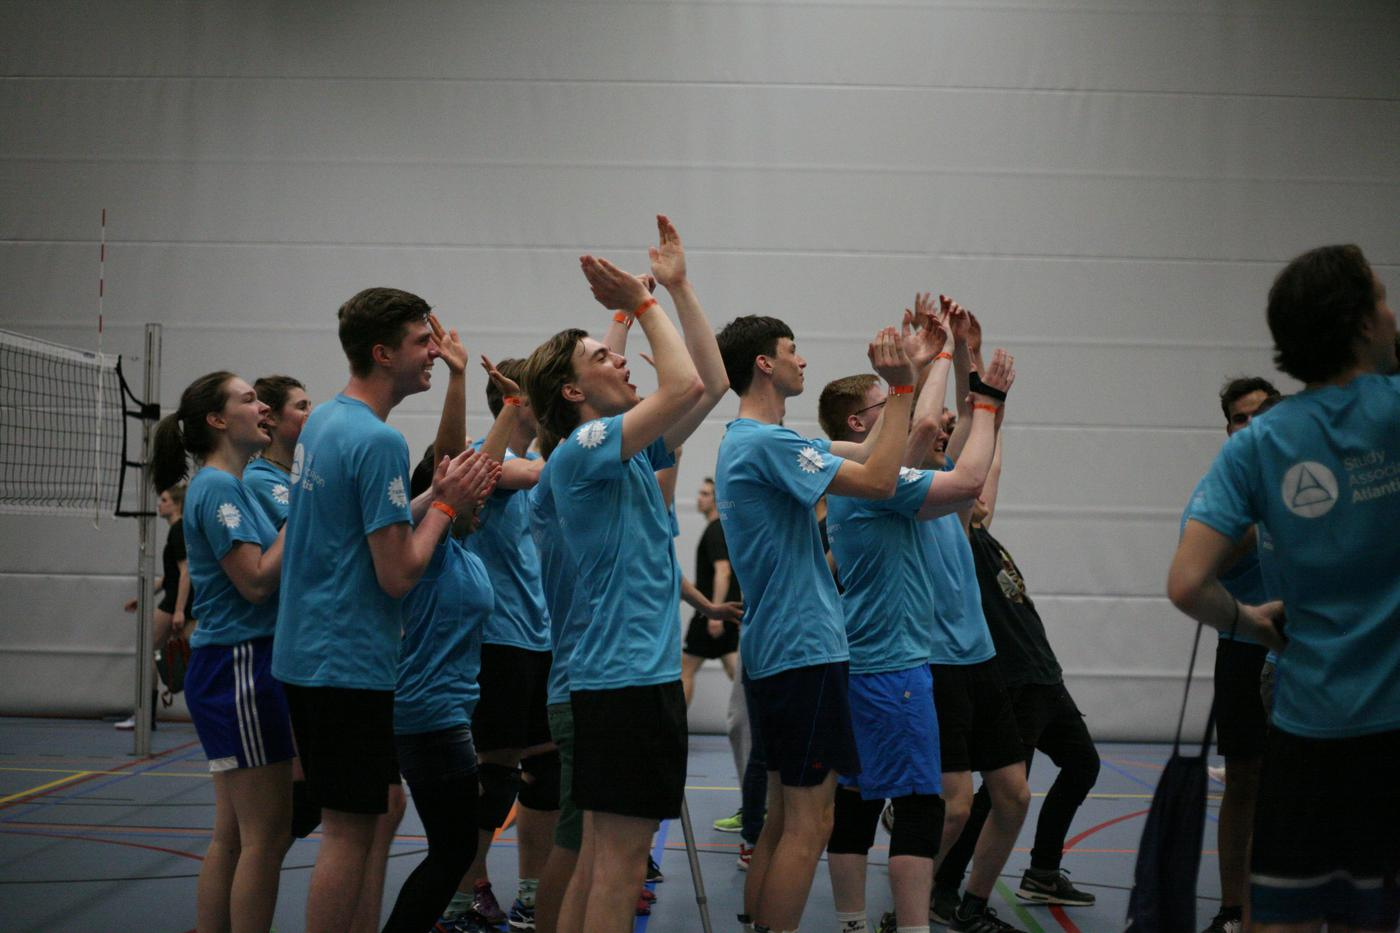 The UCSRN Tournament; A day of glorification and achievements